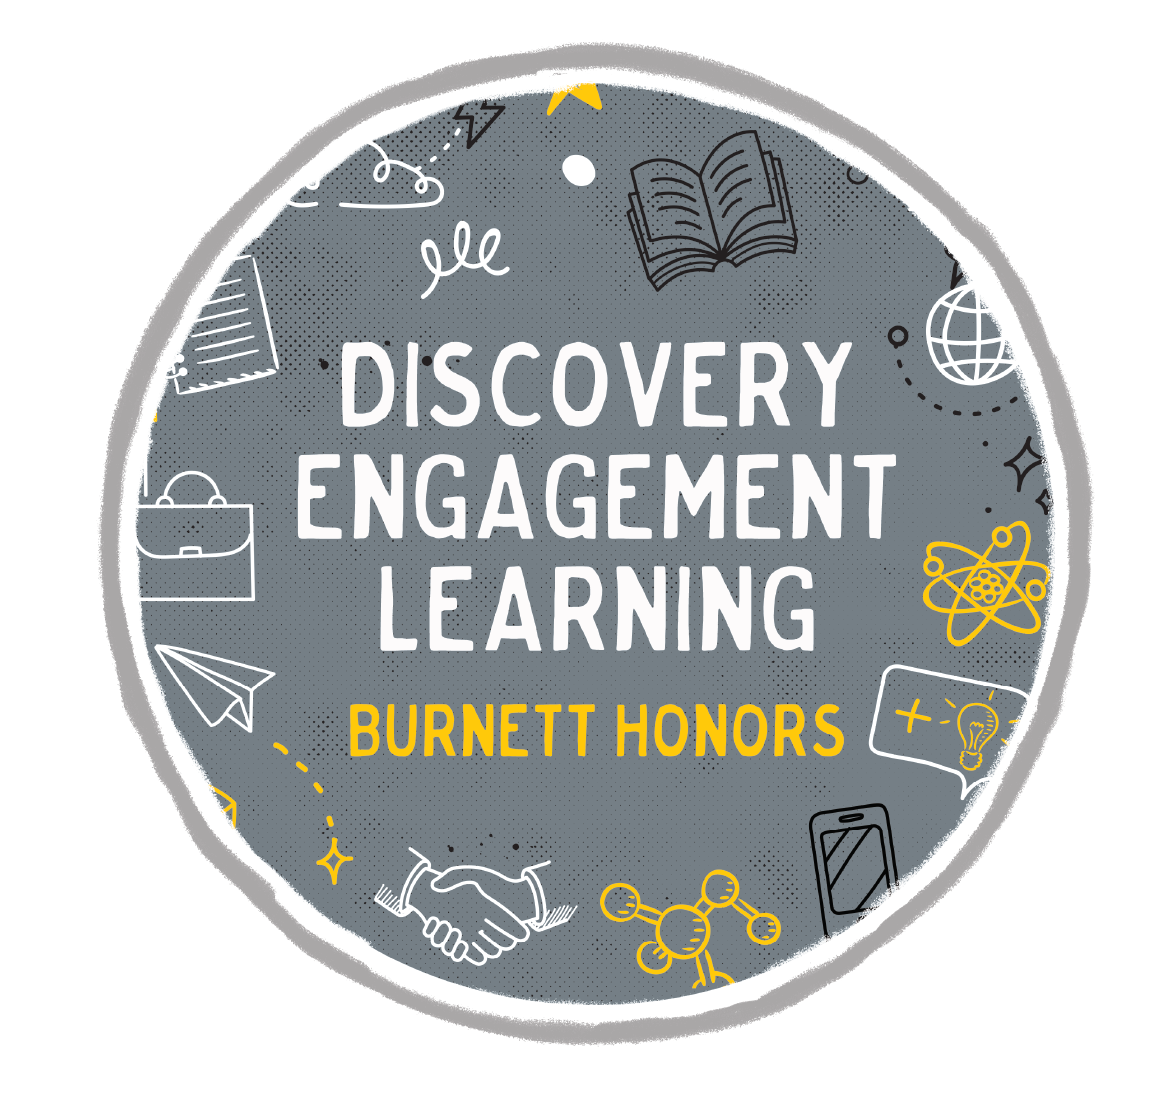 Discovery engagement learning